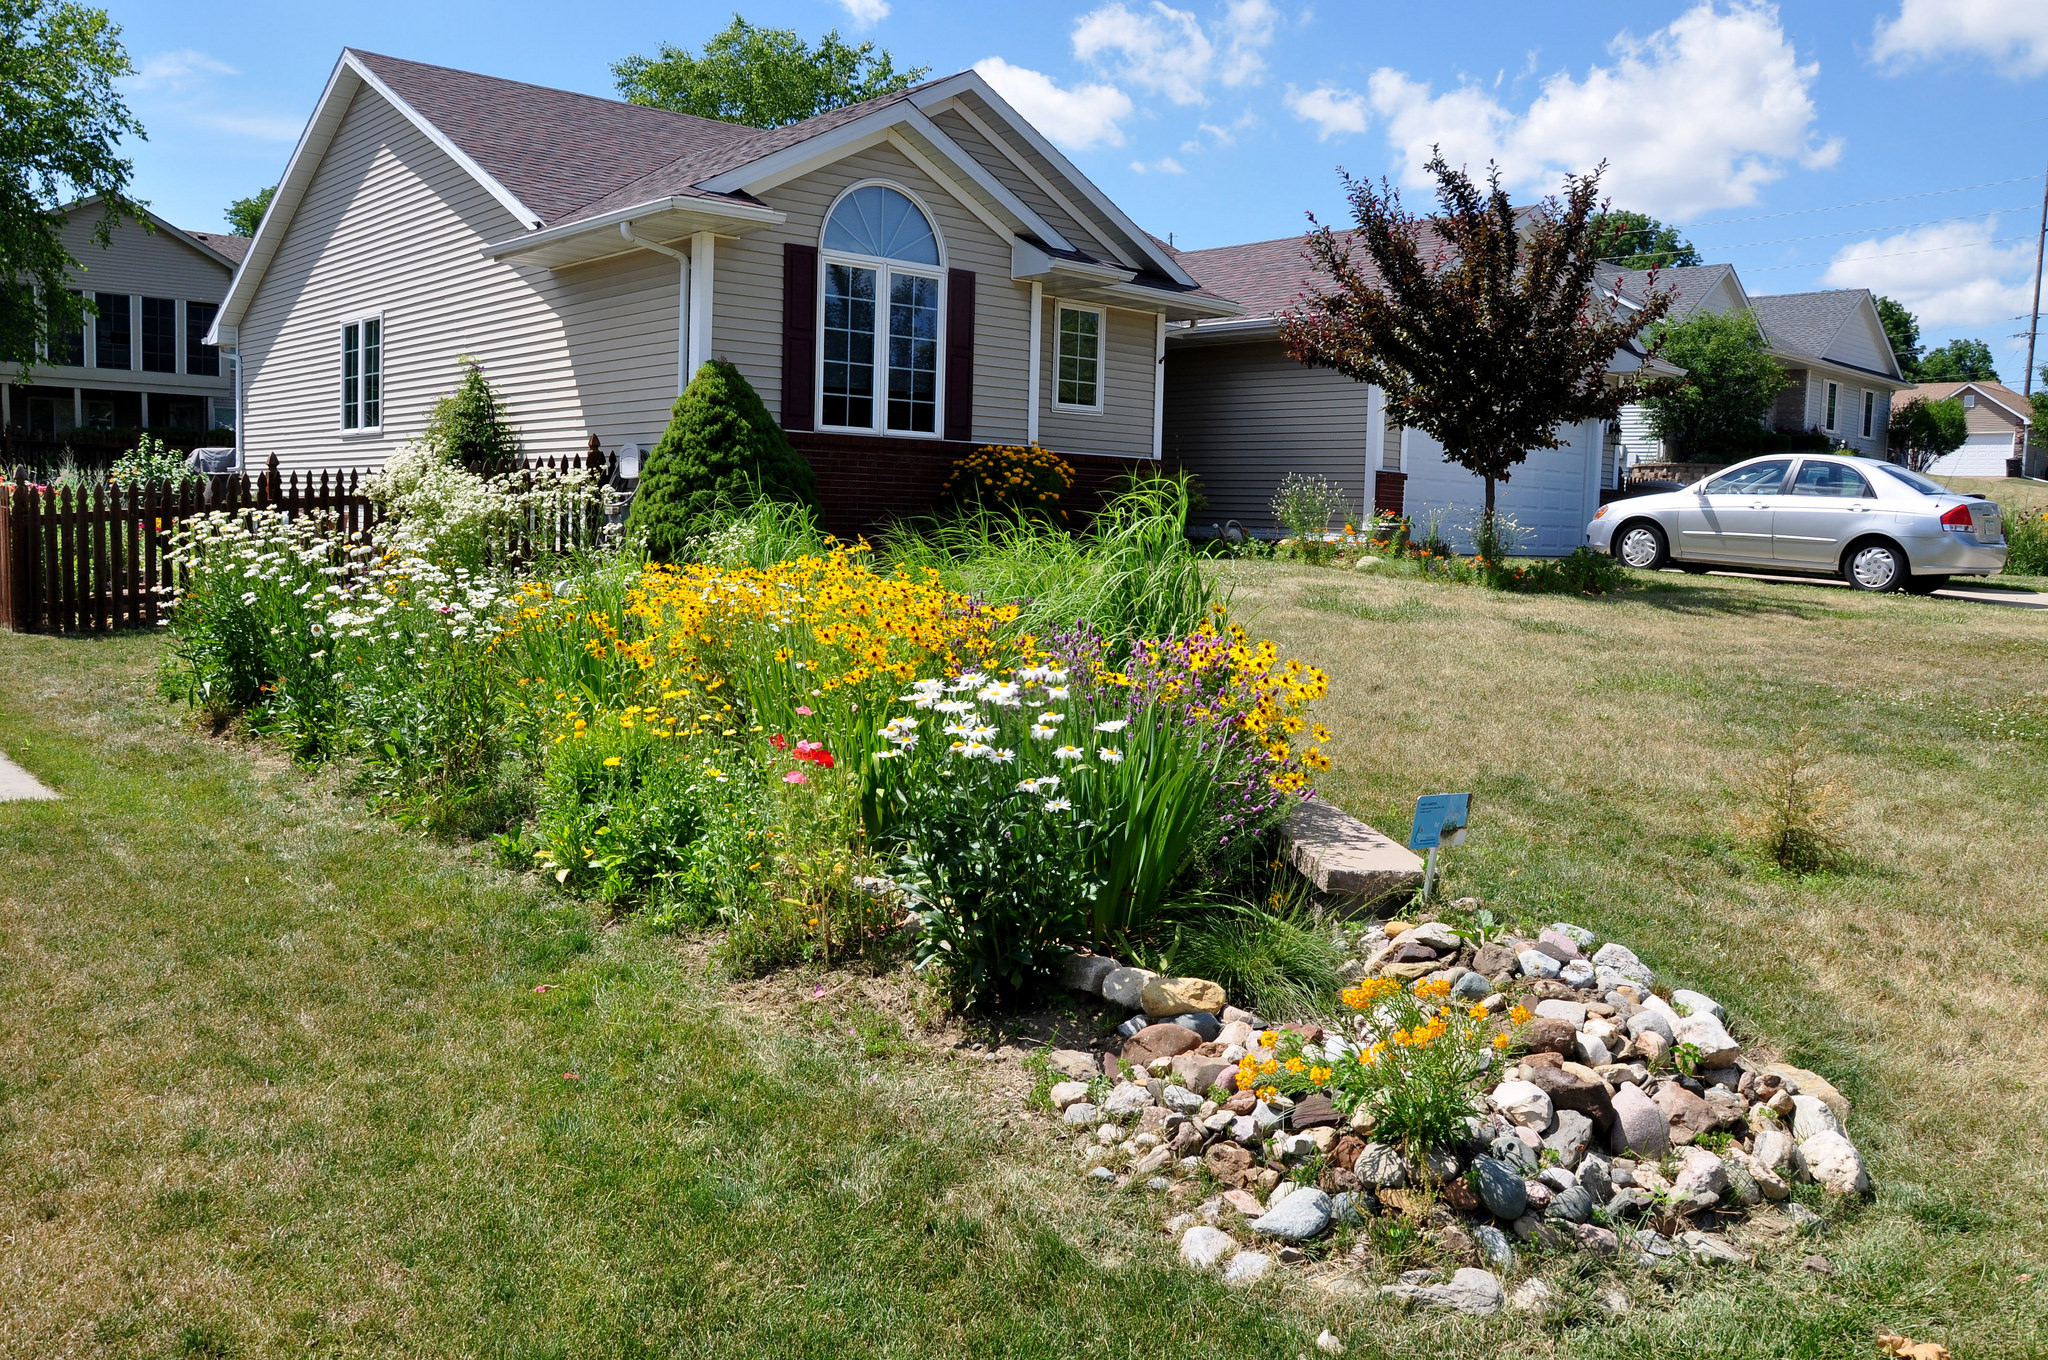 Raingarden in lawn in front of newer home. Rock mulch.